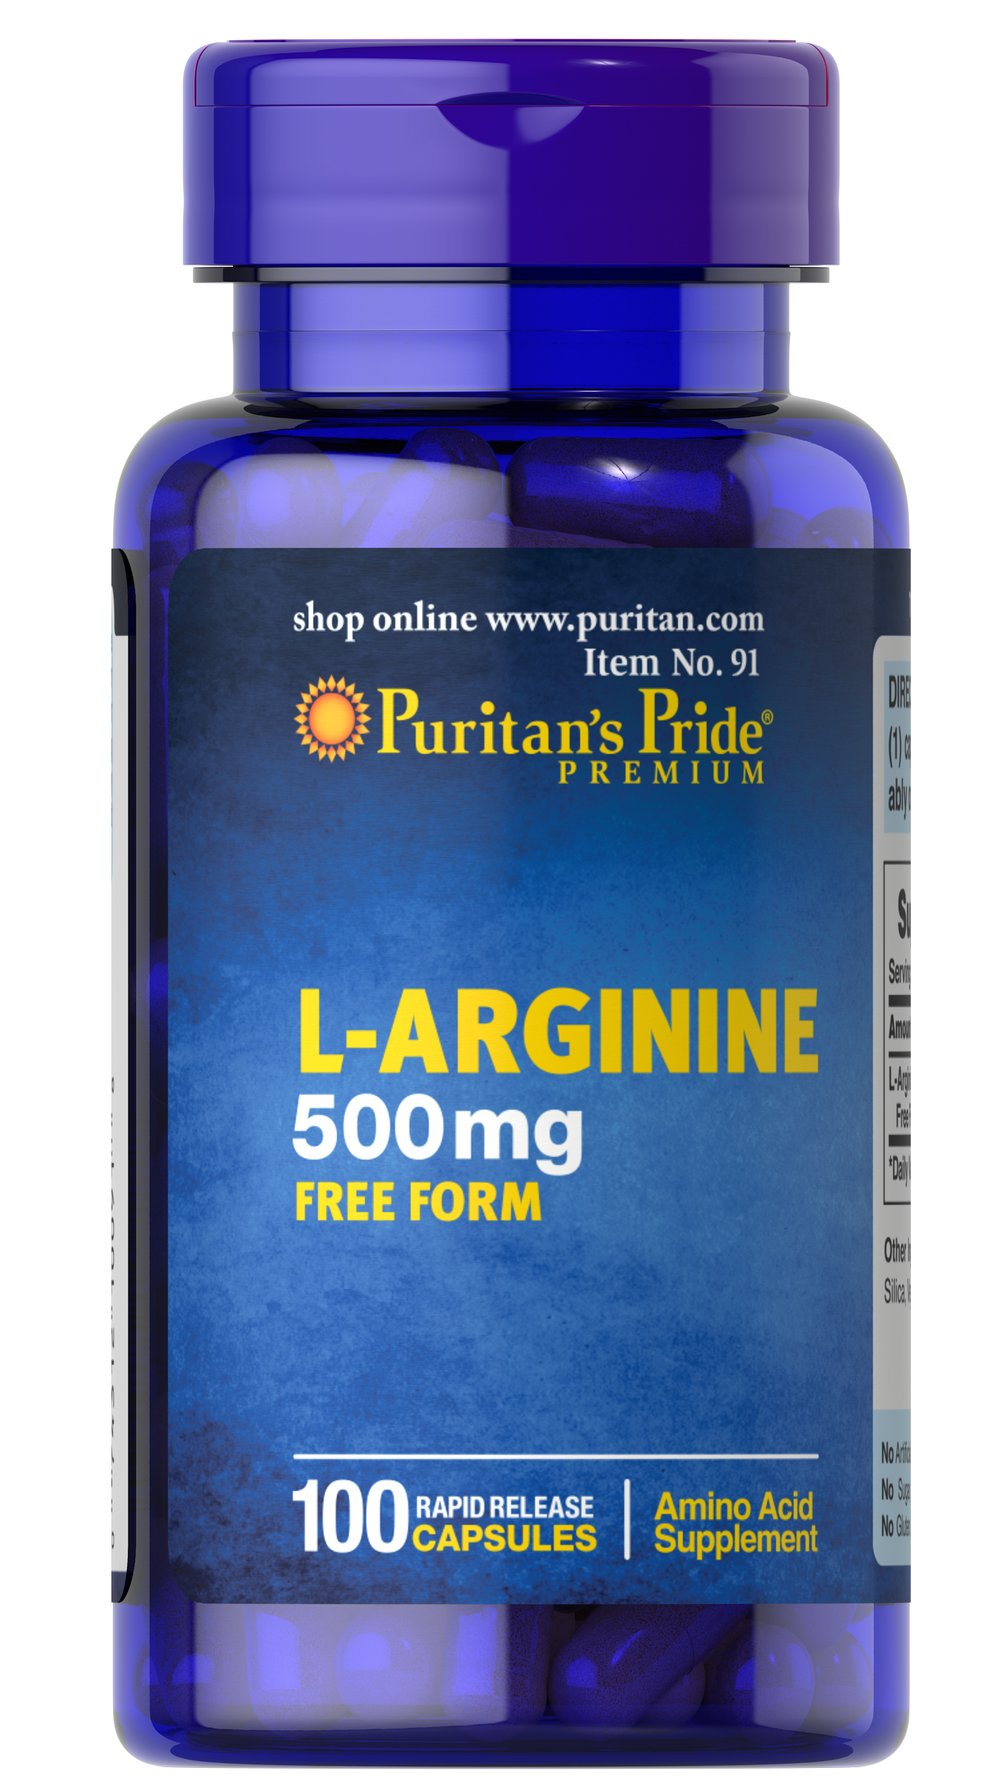 L-Arginine 500 mg <p>Arginine is one of 20 amino acids, the building blocks of protein.** Arginine can  serve as a source of energy, and is involved in various pathways throughout the body.** Arginine supports the effect of exercise and is one of the most important amino acids involved in immune function.** Adults can take one caplet daily. </p> 100 Capsules 500 mg $13.99